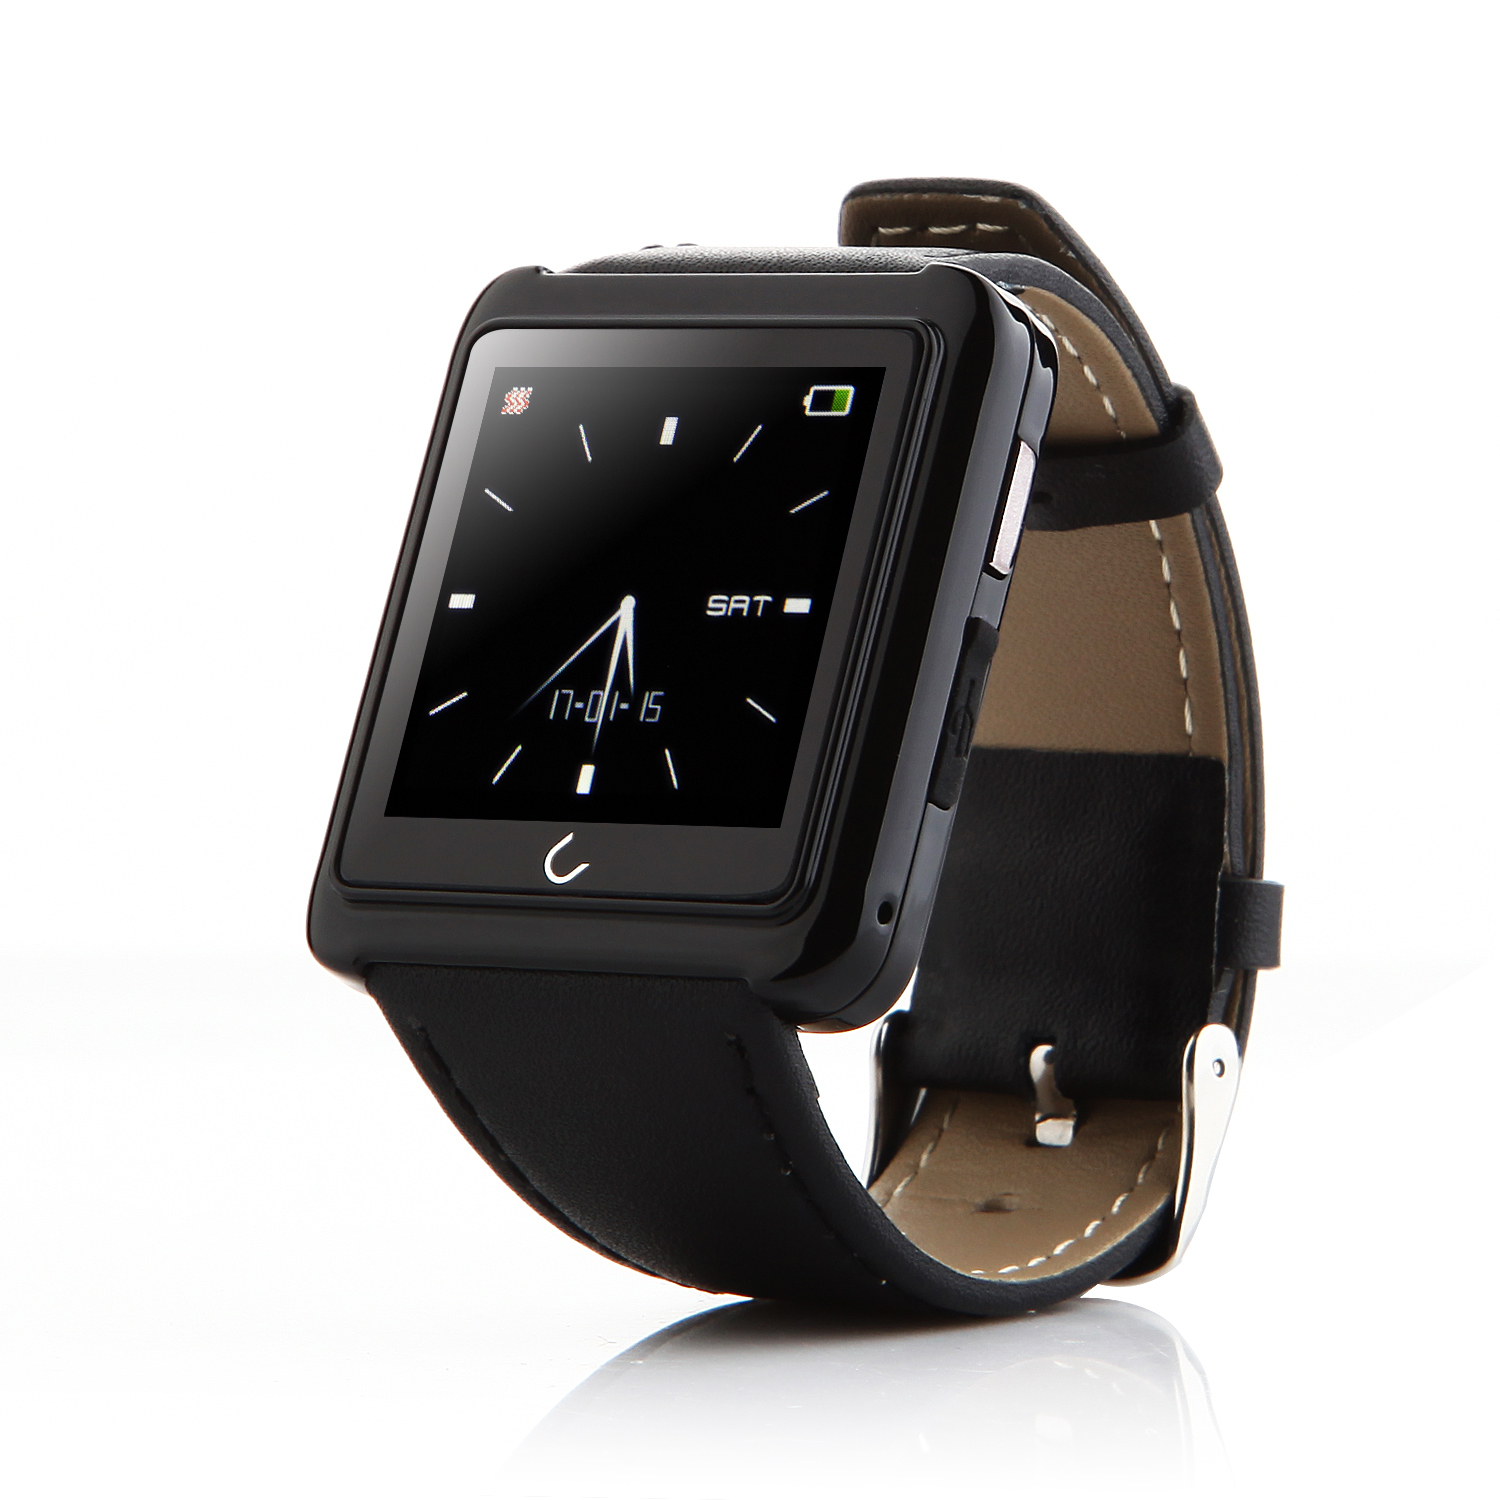 "U Watch U10 Smart Bluetooth Watch 1.54"" Screen for iOS & Android Smartphones Black"